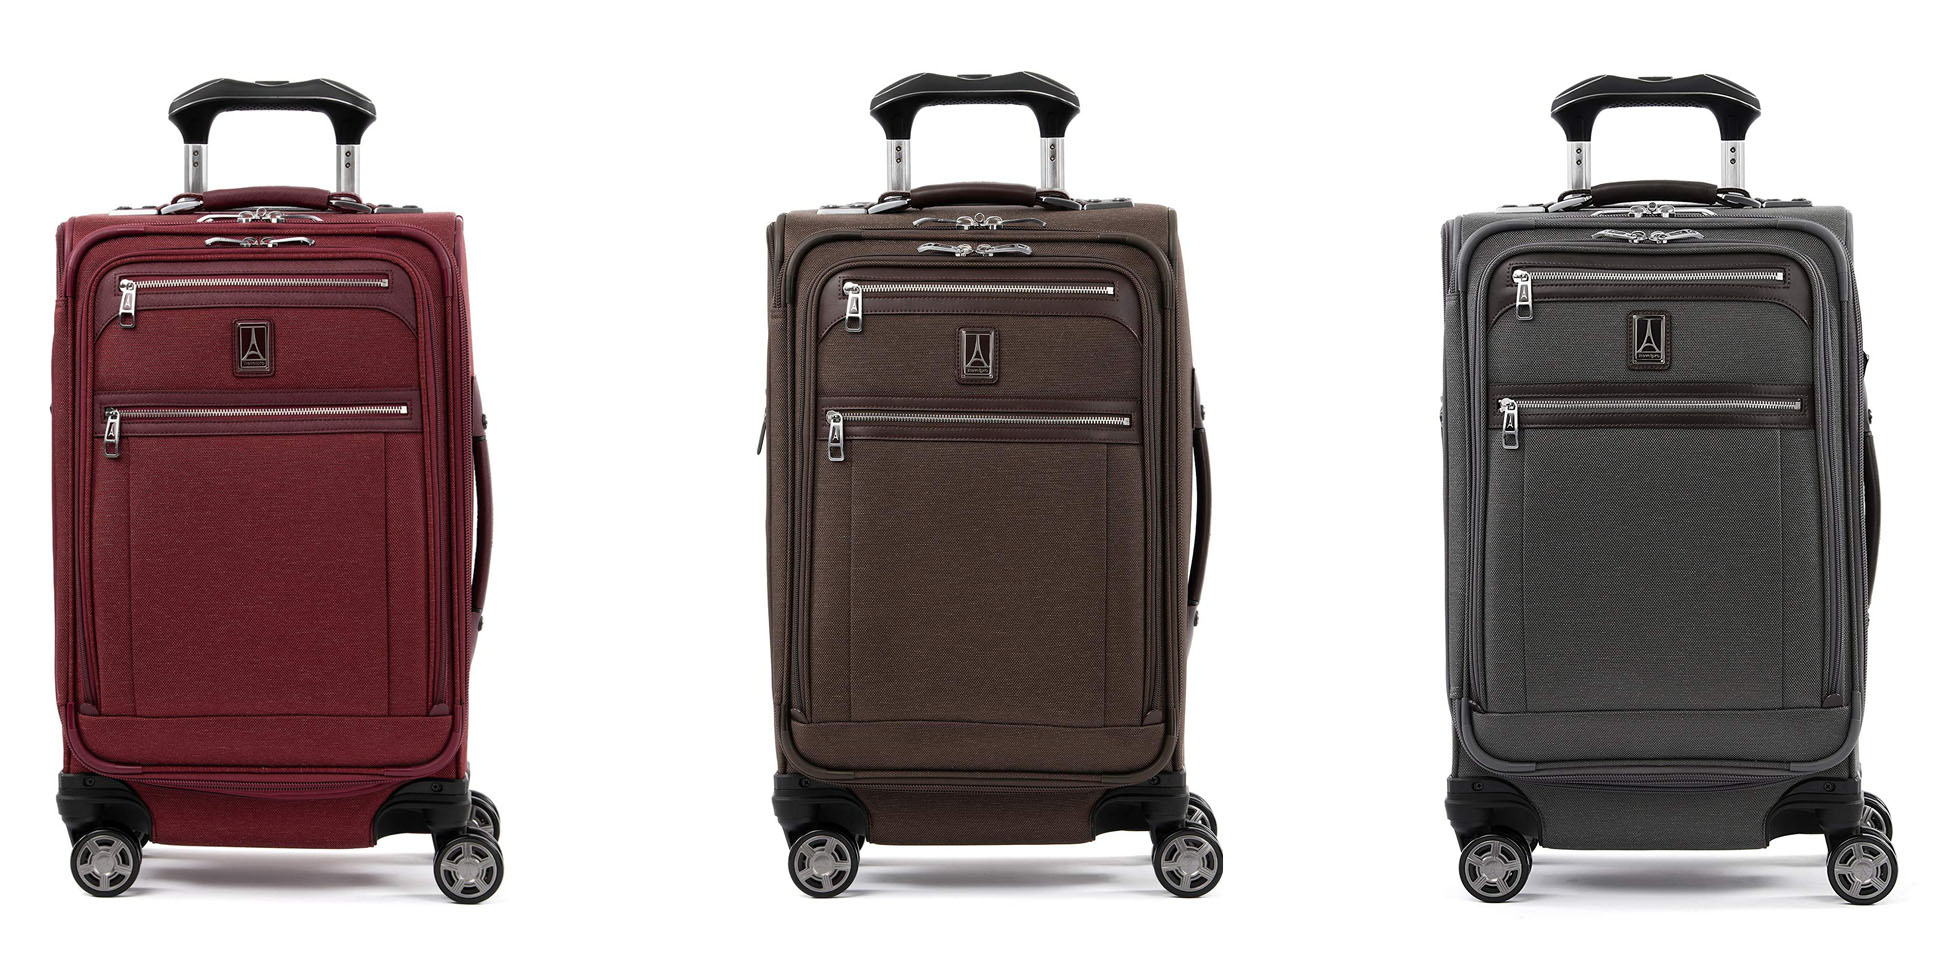 Travelpro's Carry-on Spinner Luggage is perfect for spring vacations at $199 (Reg. up to $255)